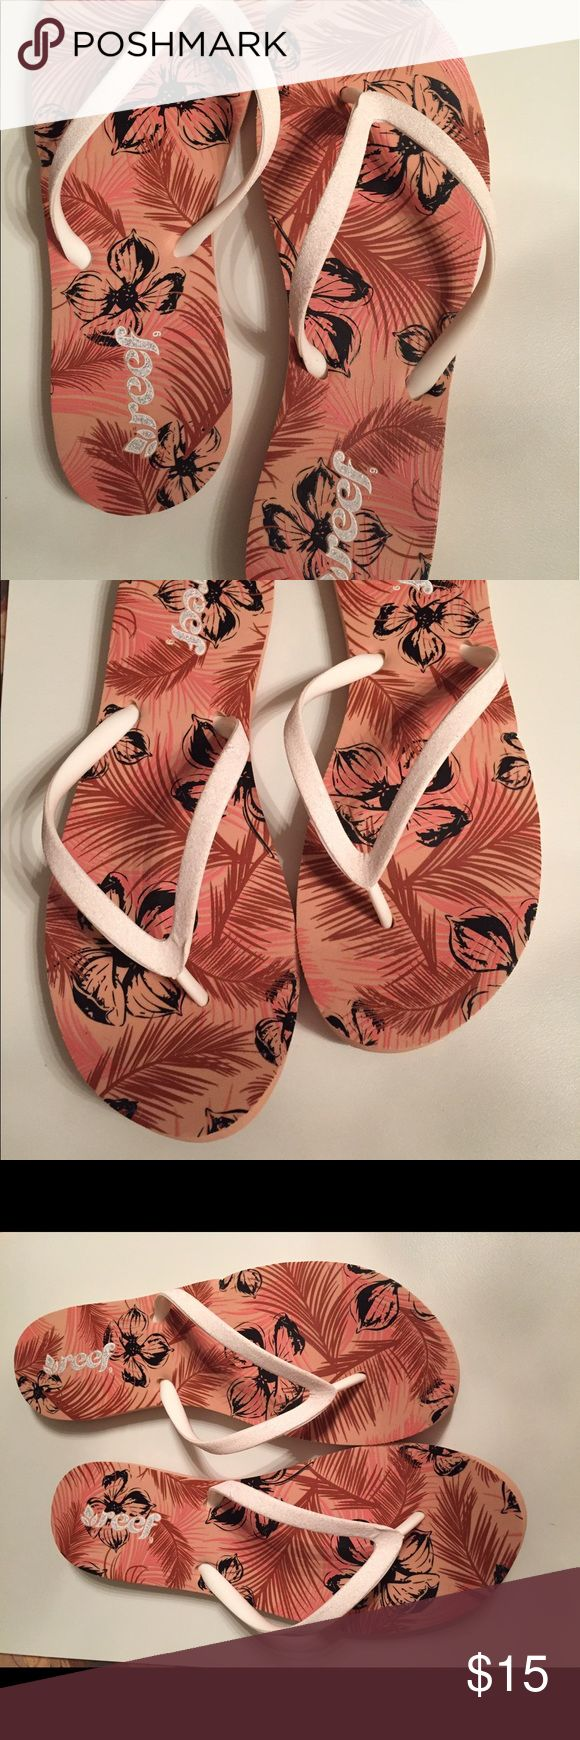 Reef Flip Flops White with flower print. Worn once and the toe a little turned up on right foot from storage. Reef Shoes Sandals